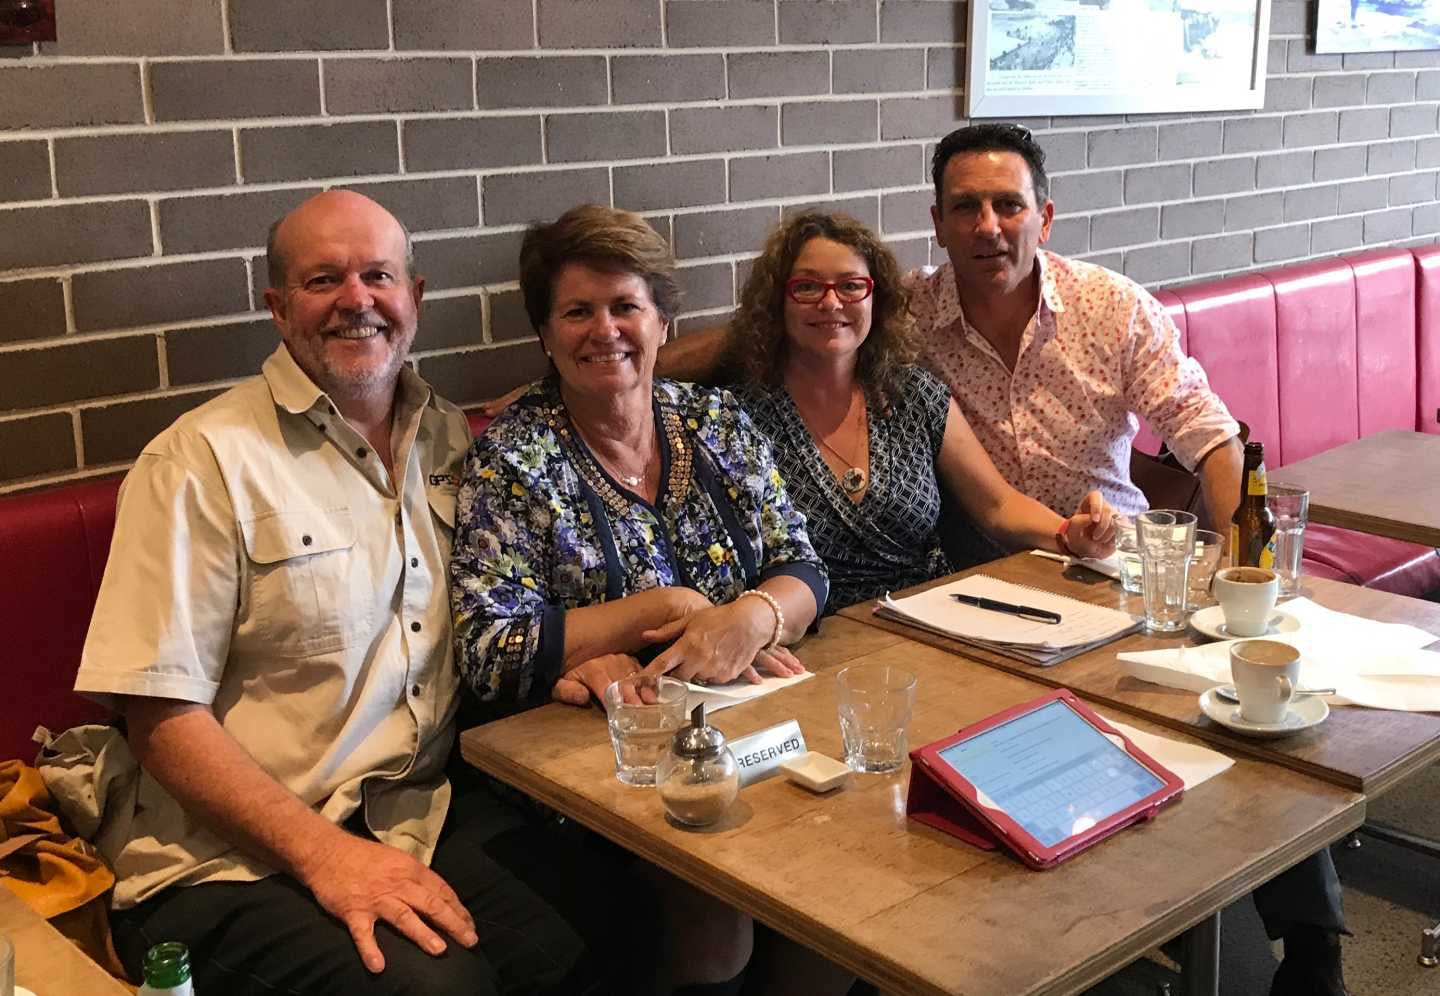 Brian and Kirsten from GPSOz catch up with Michelle and Heatley from CAMPS Australia Wide